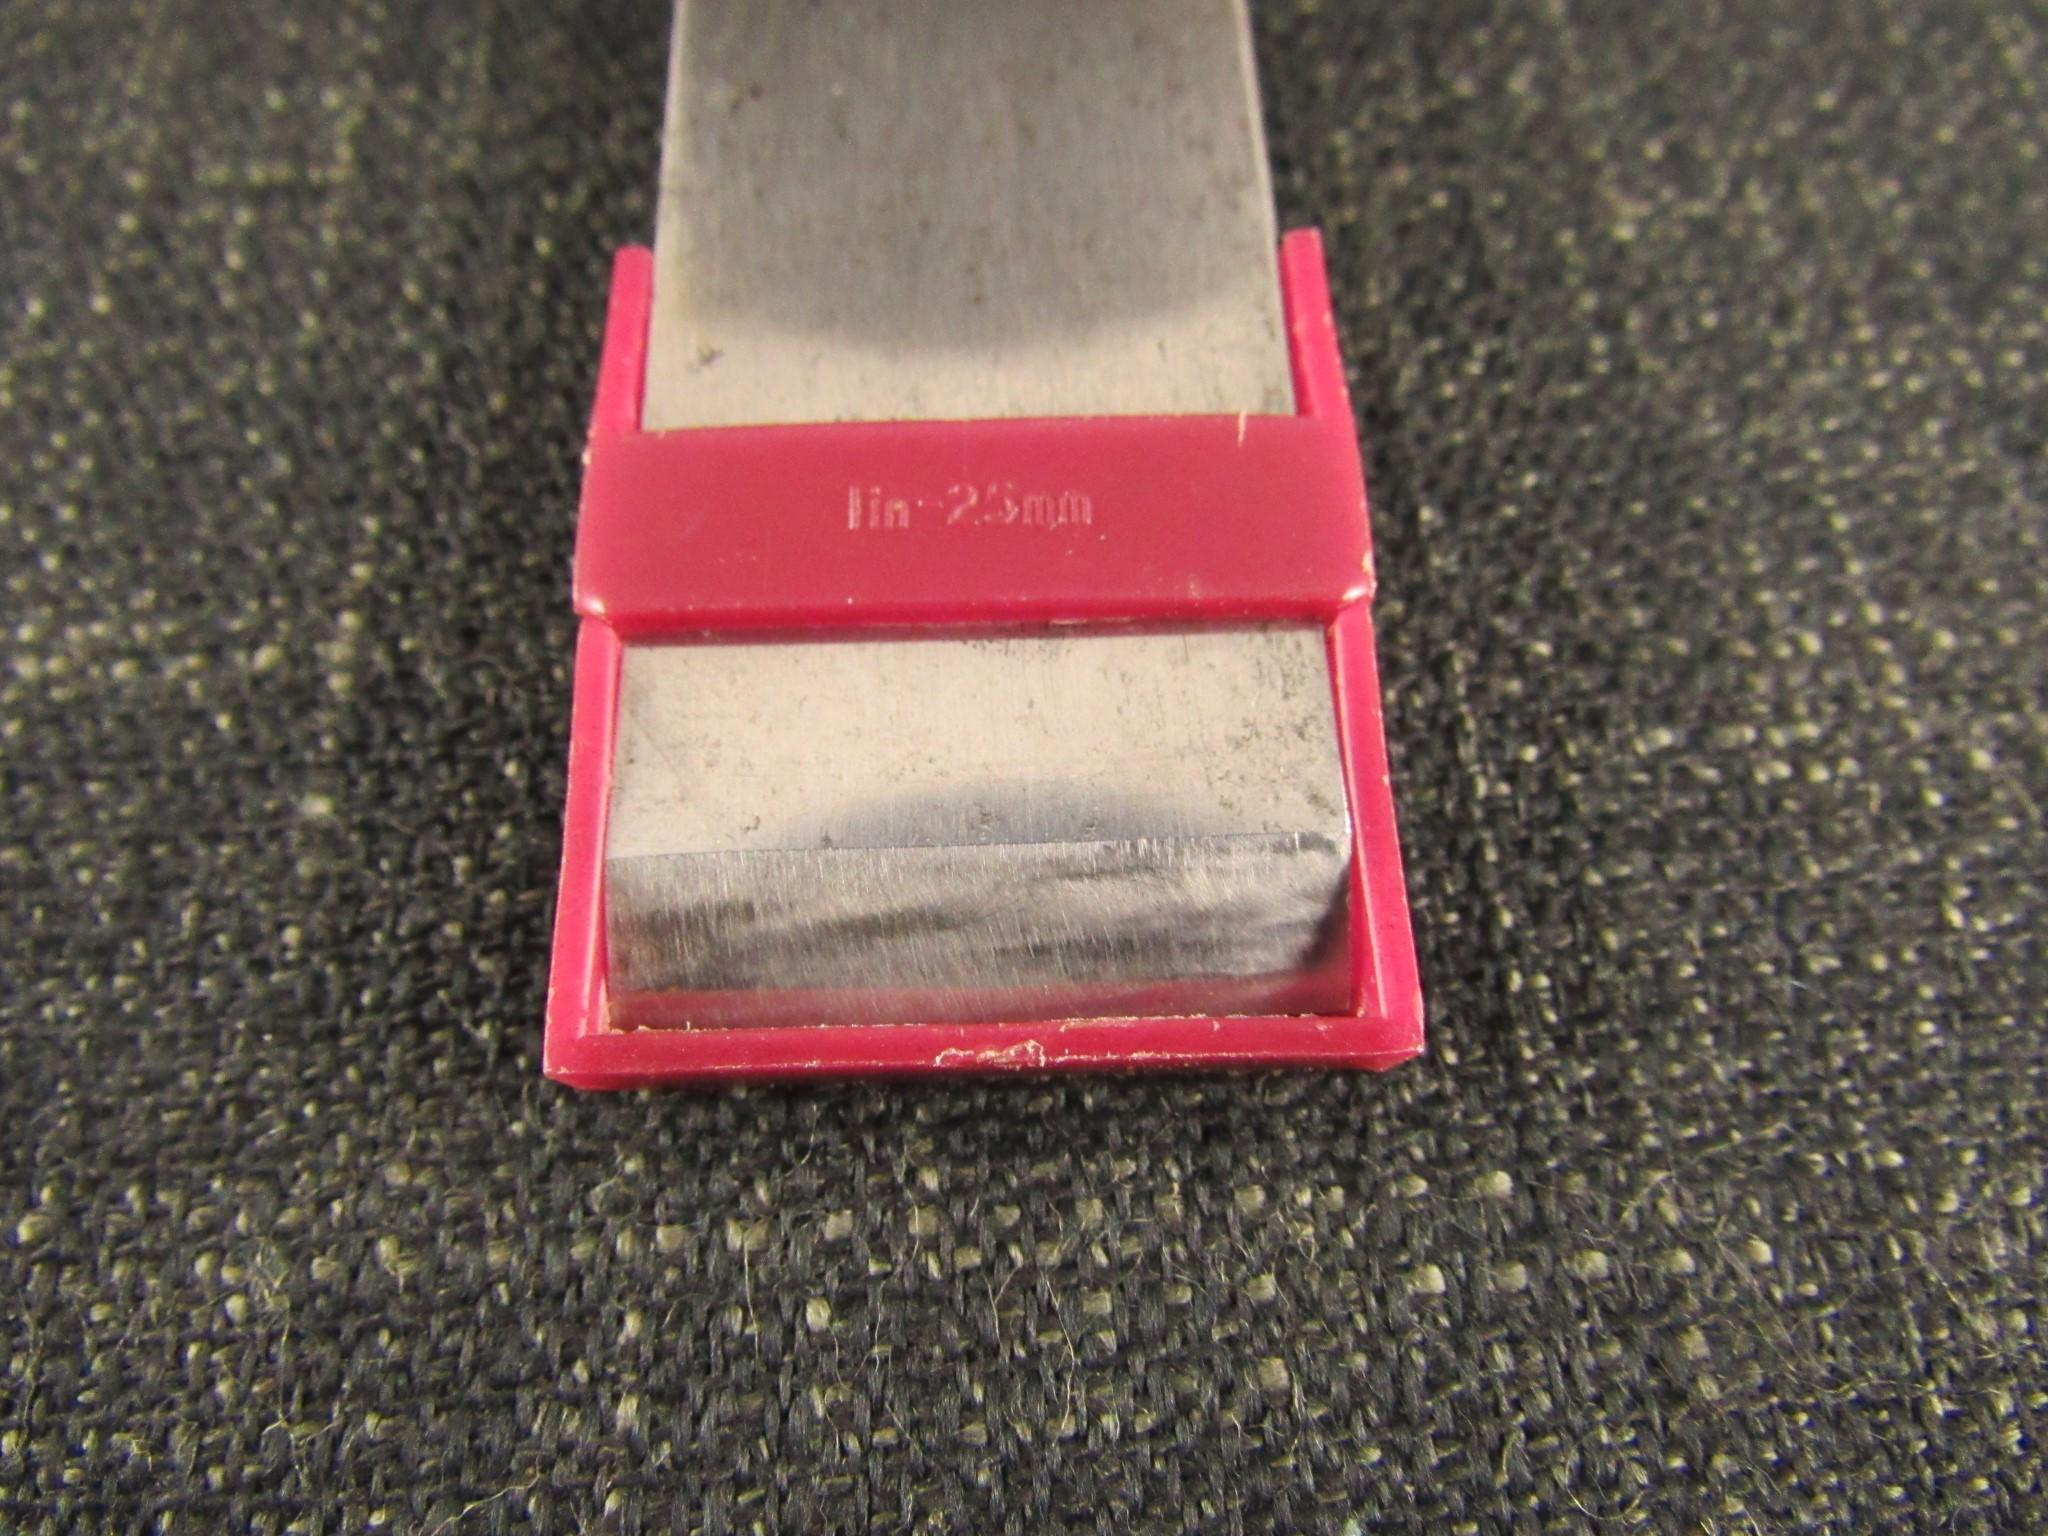 Robert SORBY Paring Chisel - 1 inch